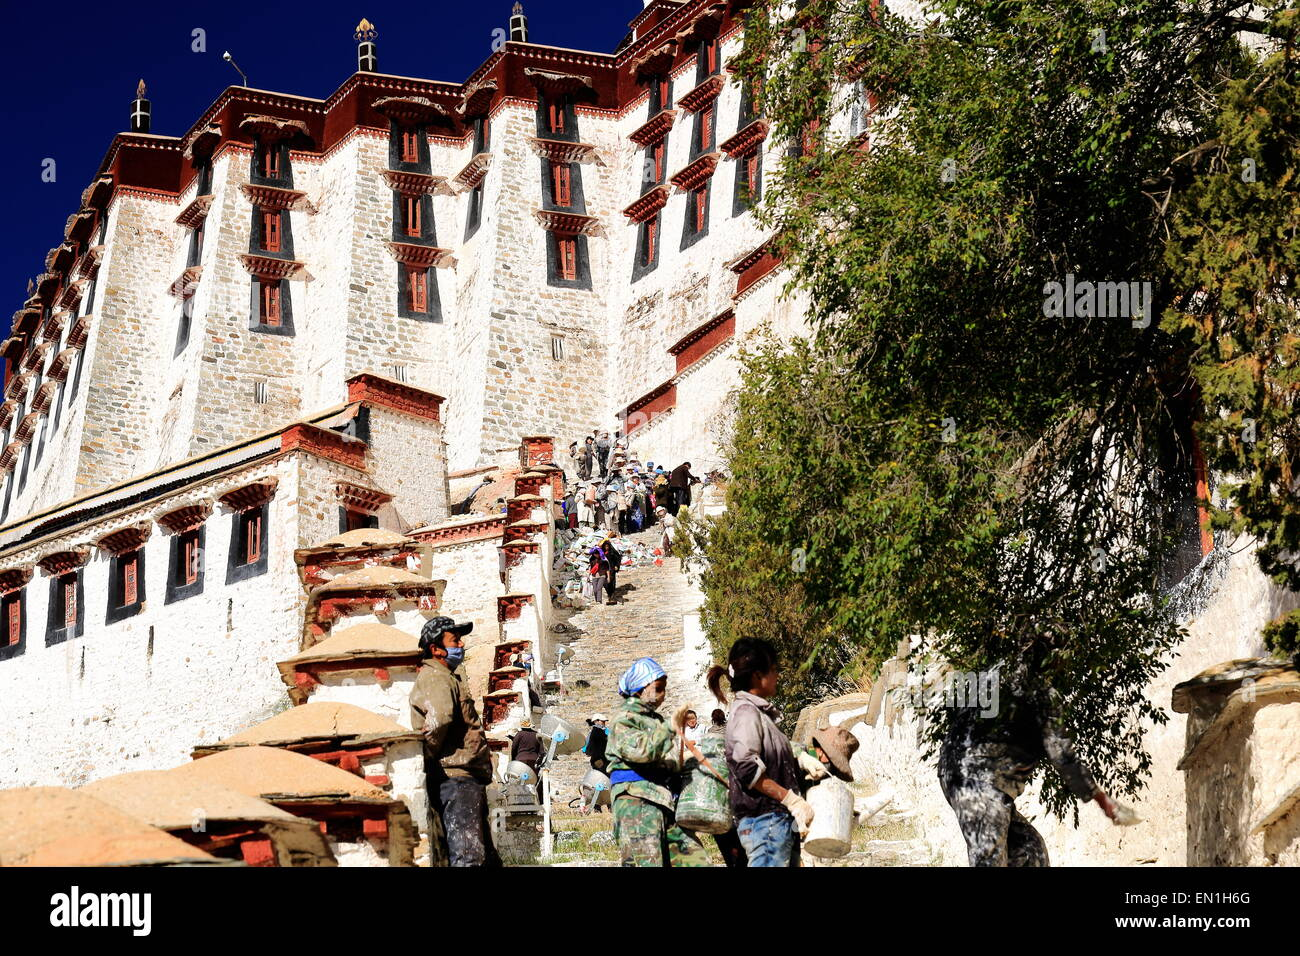 LHASA, TIBET, CHINA-OCTOBER 20: Tibetan workers whitewash the walls in the Potala palace while some locals get to - Stock Image